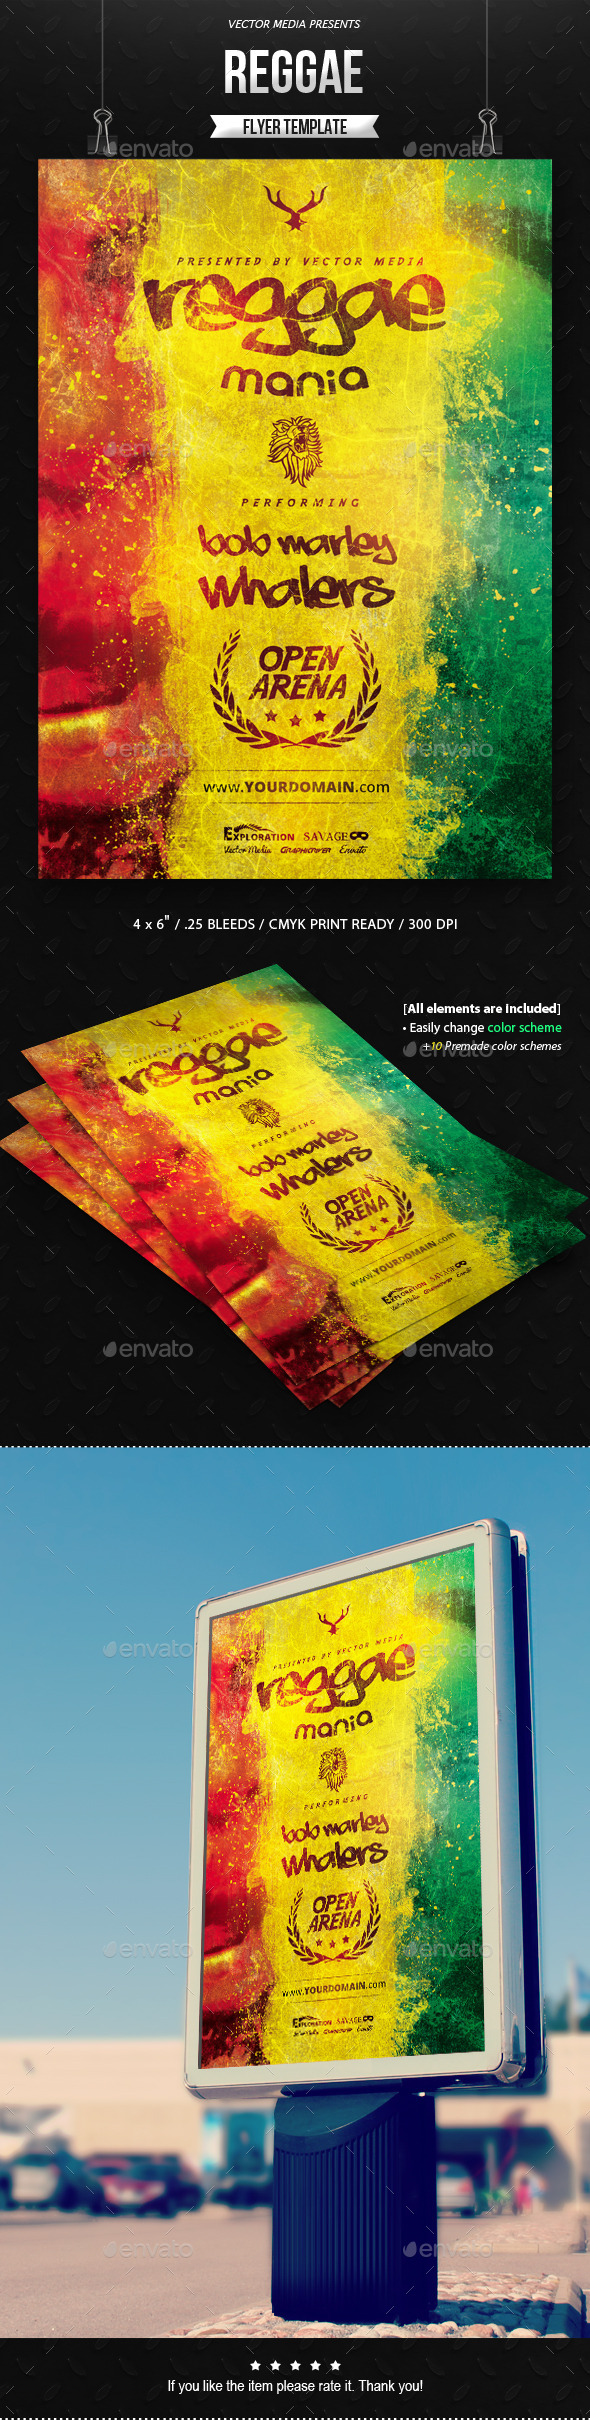 Reggae - Flyer - Clubs & Parties Events